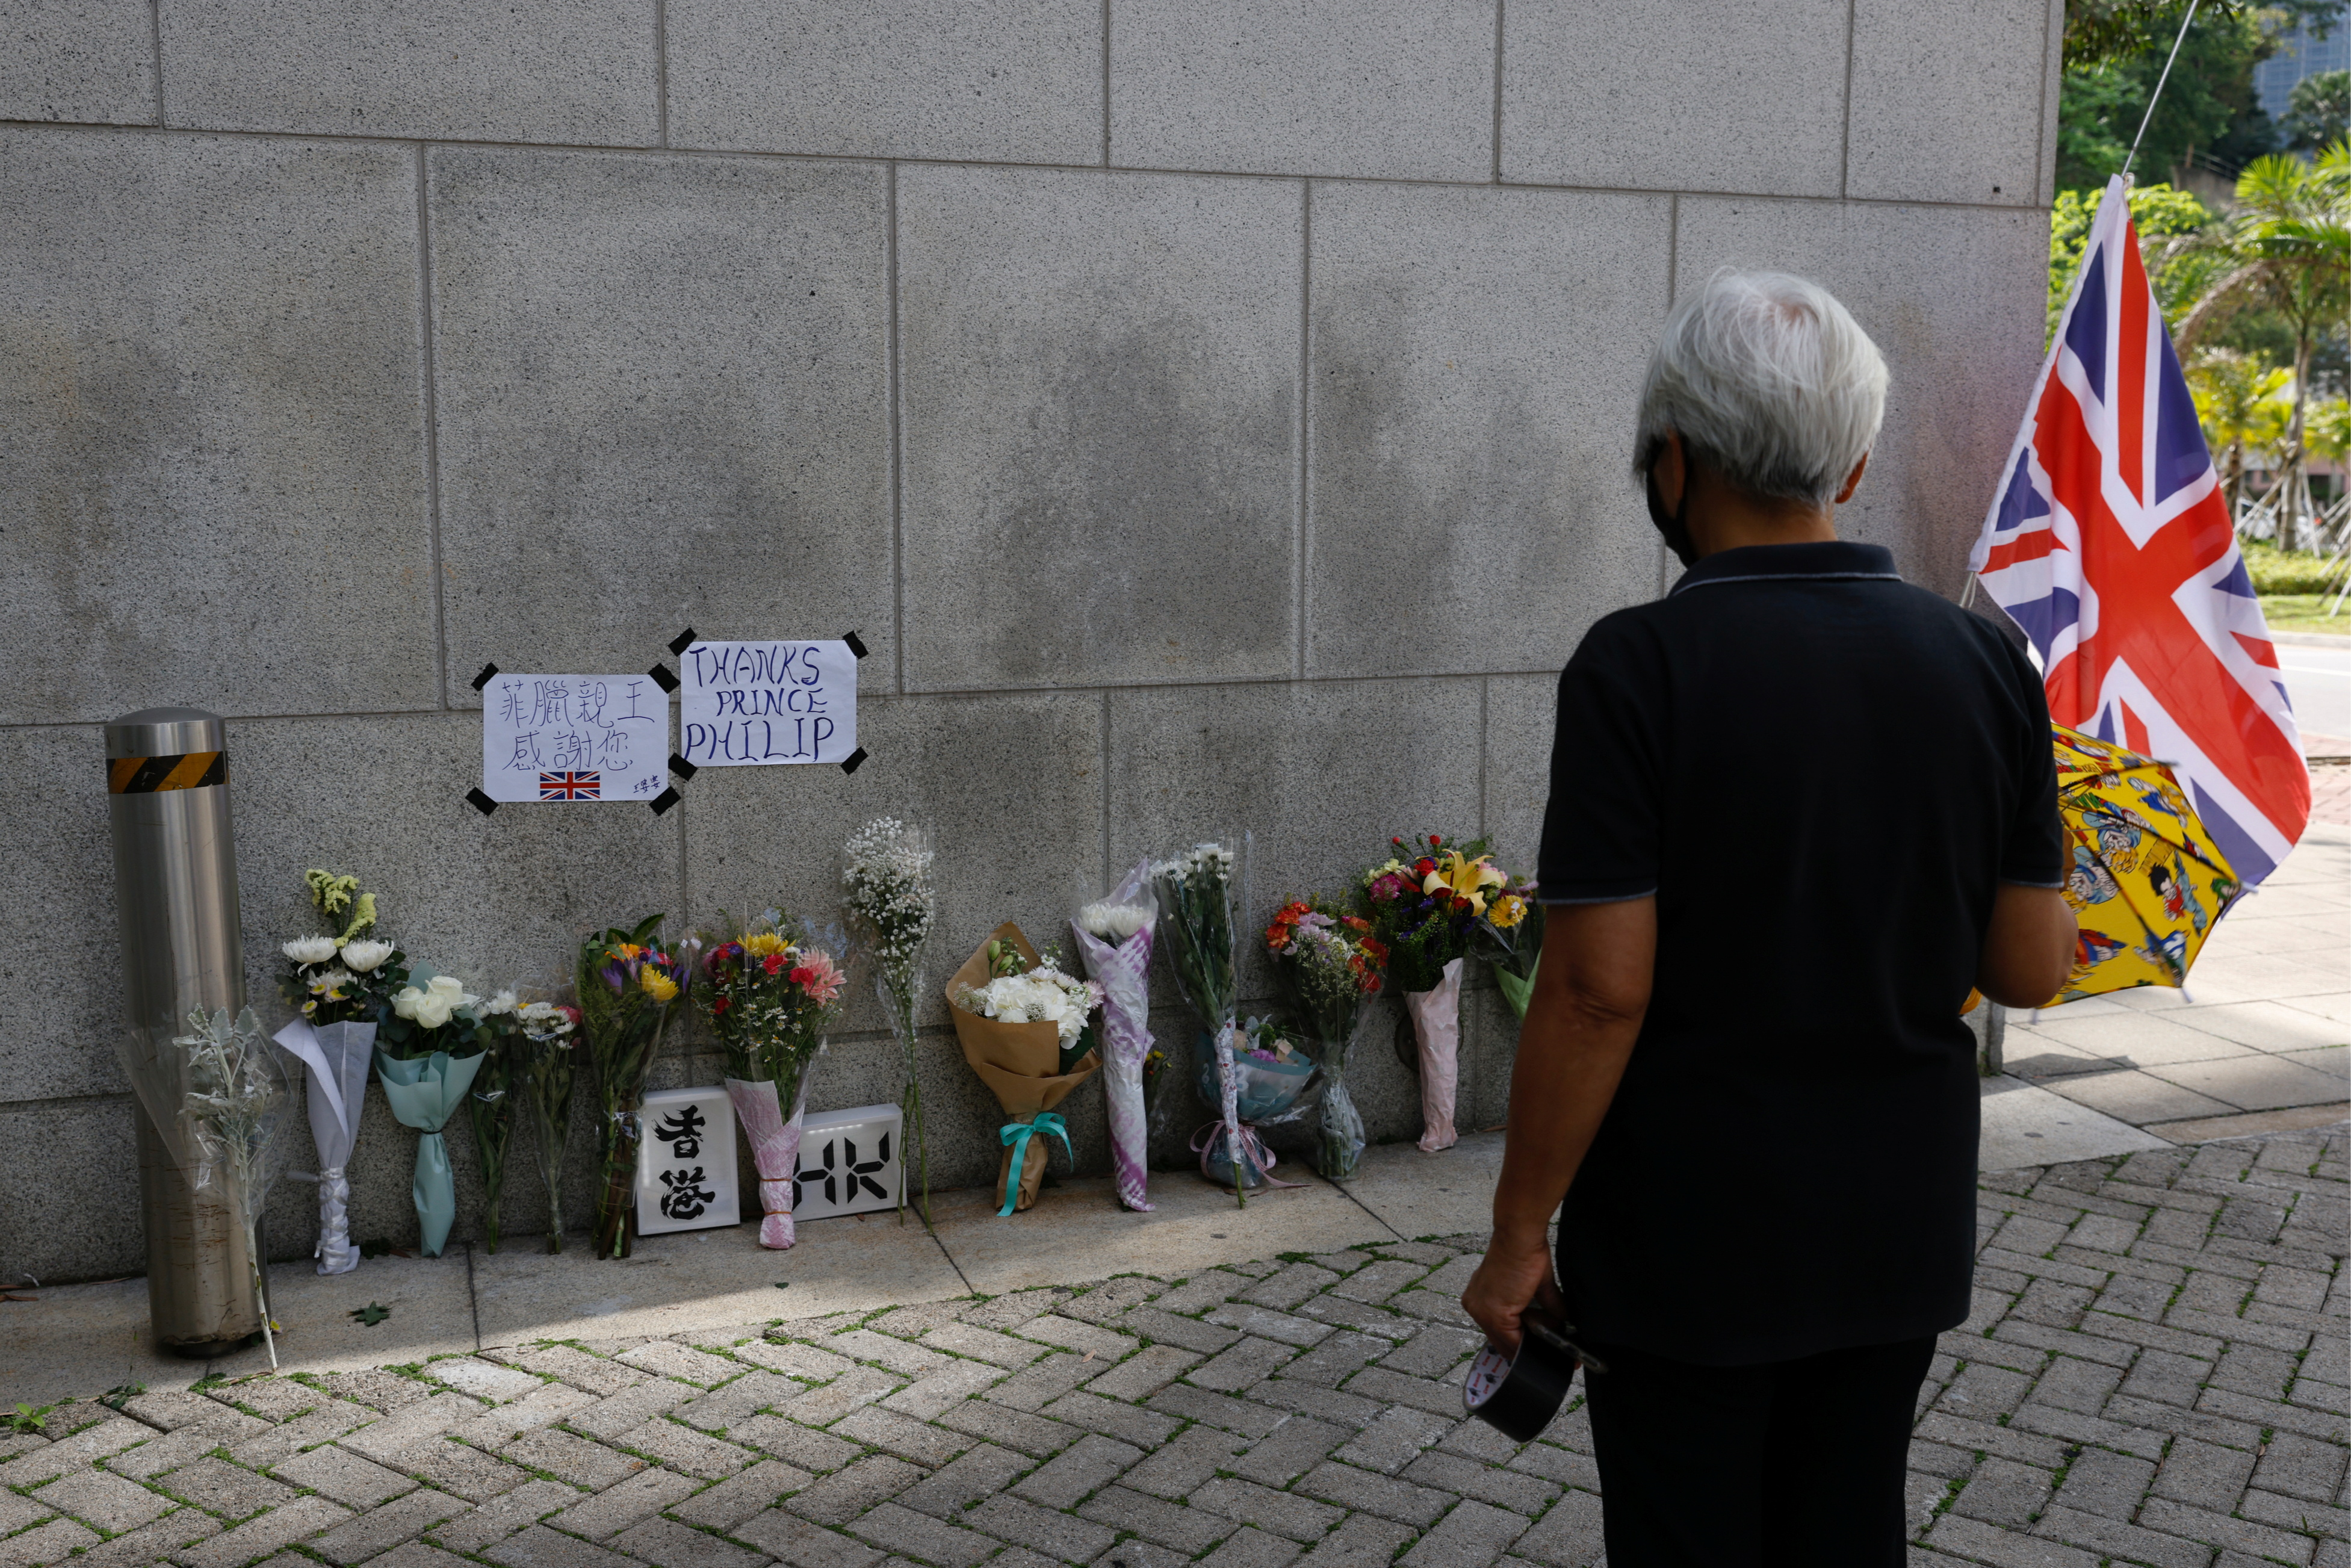 Flowers lie outside the British Consulate-General, Hong Kong, after Britain's Prince Philip, husband of Queen Elizabeth, died at the age of 99, in China April 10, 2021. REUTERS/Tyrone Siu